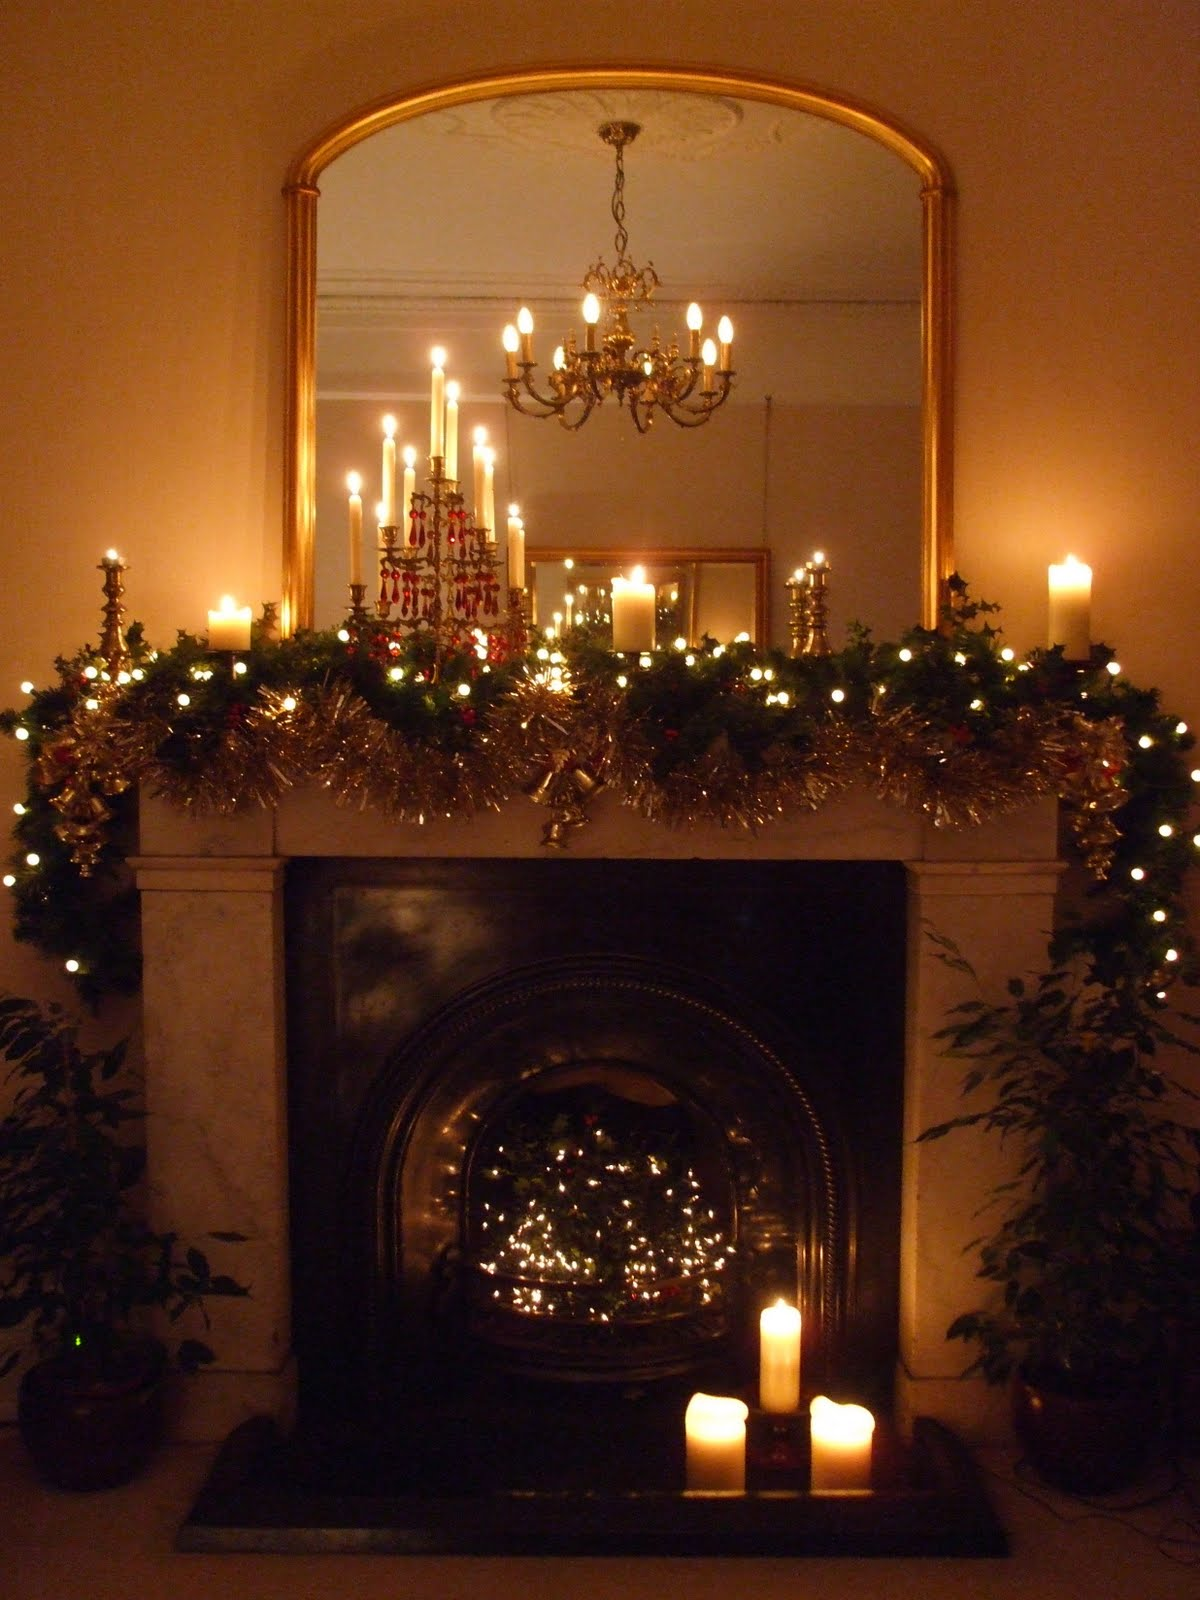 A beautifully decorated fireplace